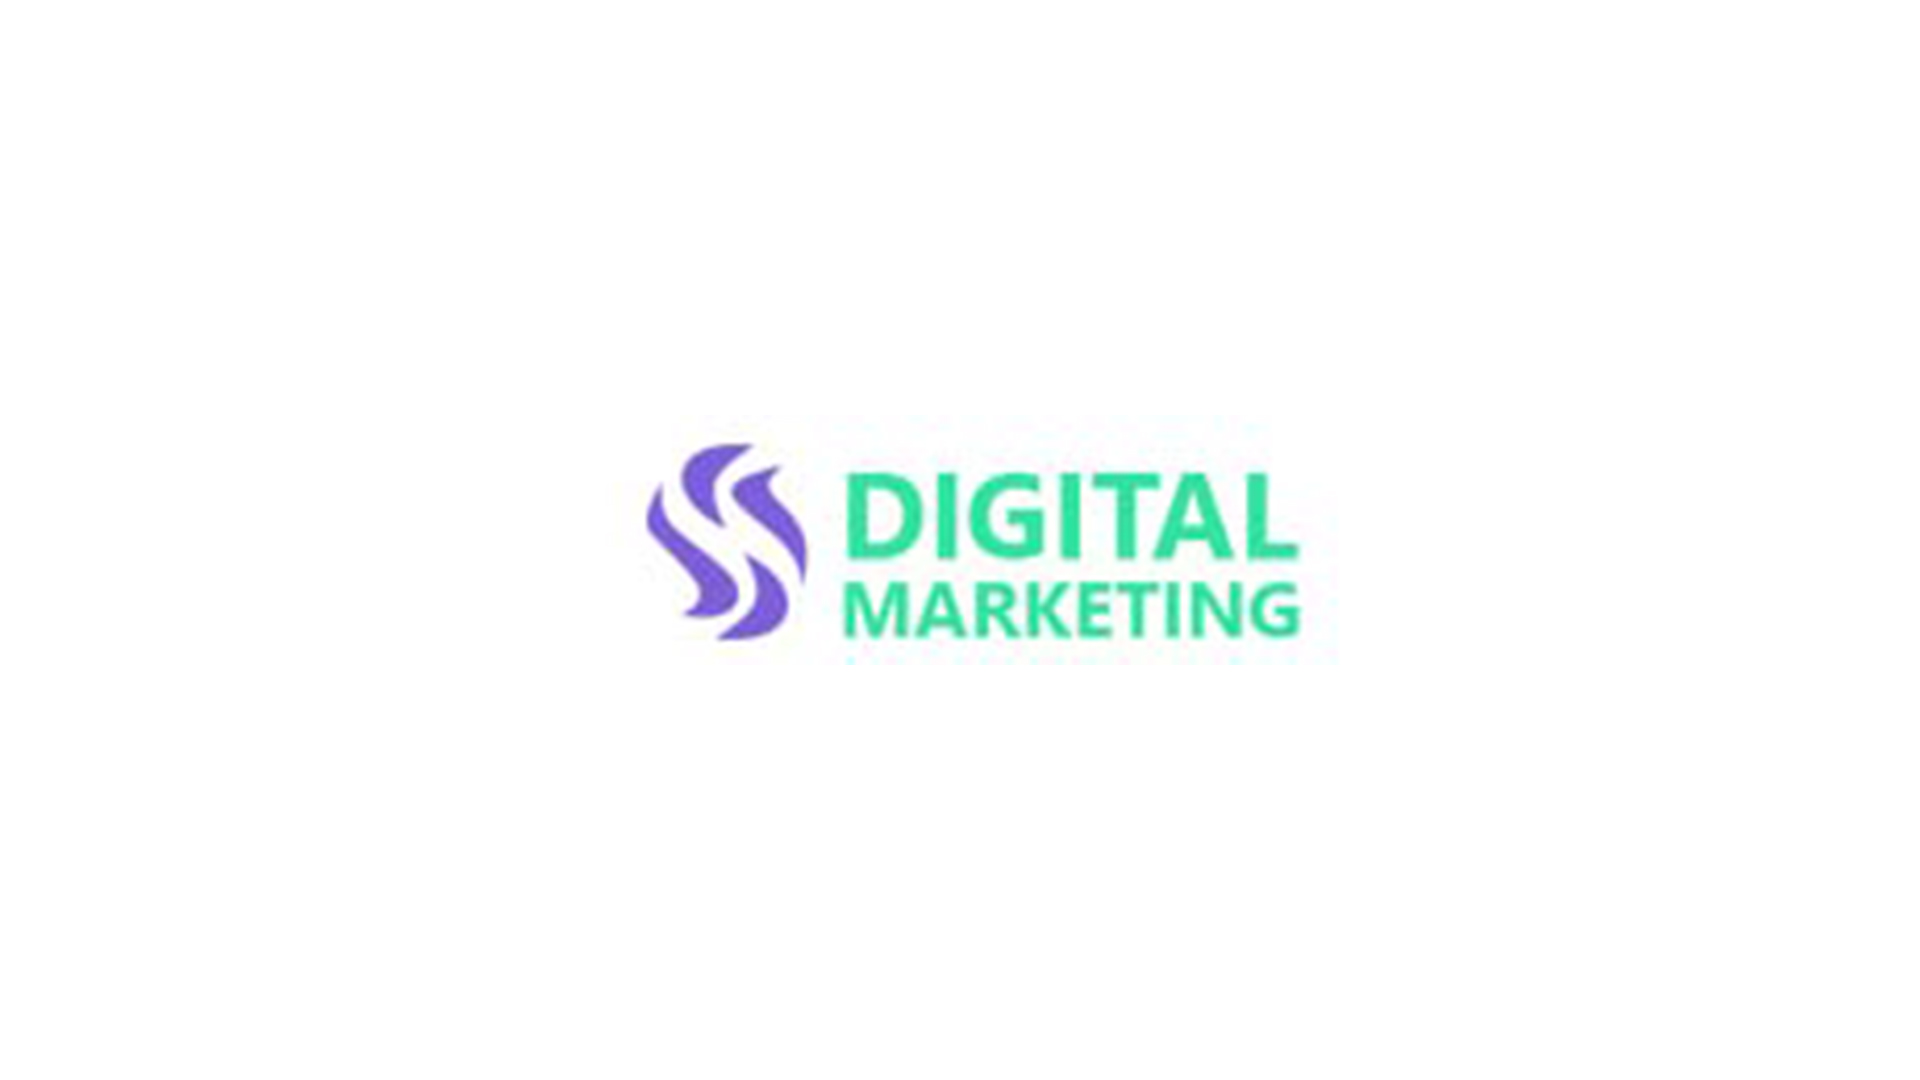 Digital marketing Company in Hyderabad